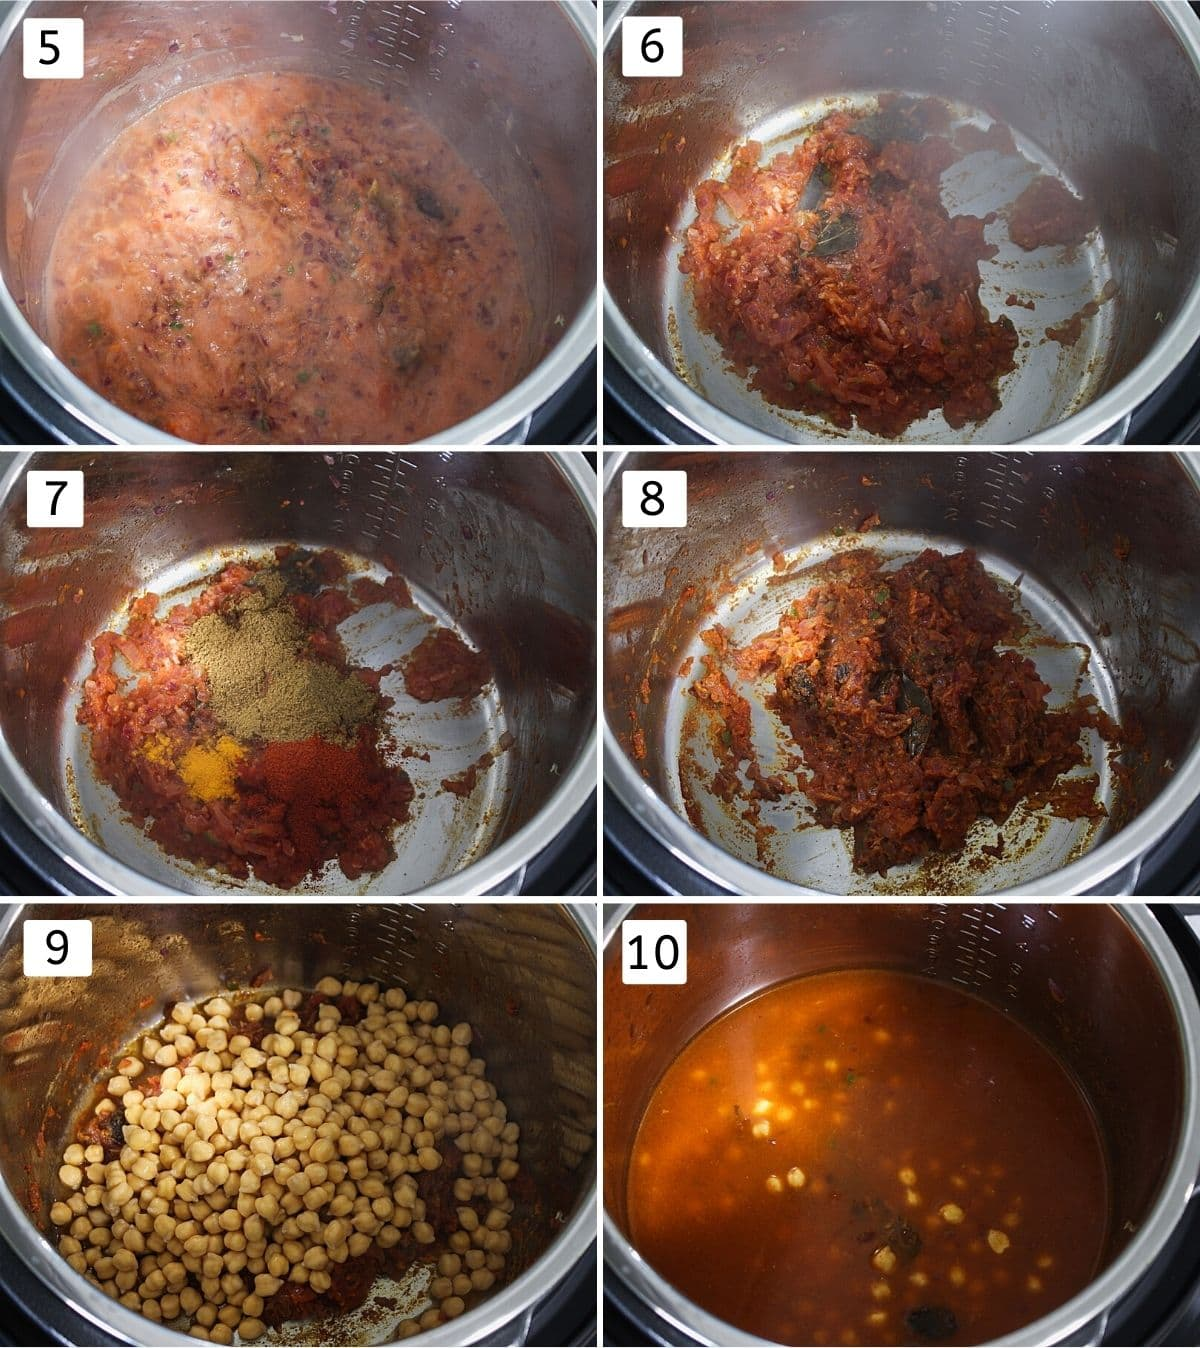 Collage of 6 steps showing adding tomato, cooked puree, adding spices, mixed, adding chickpeas and water.